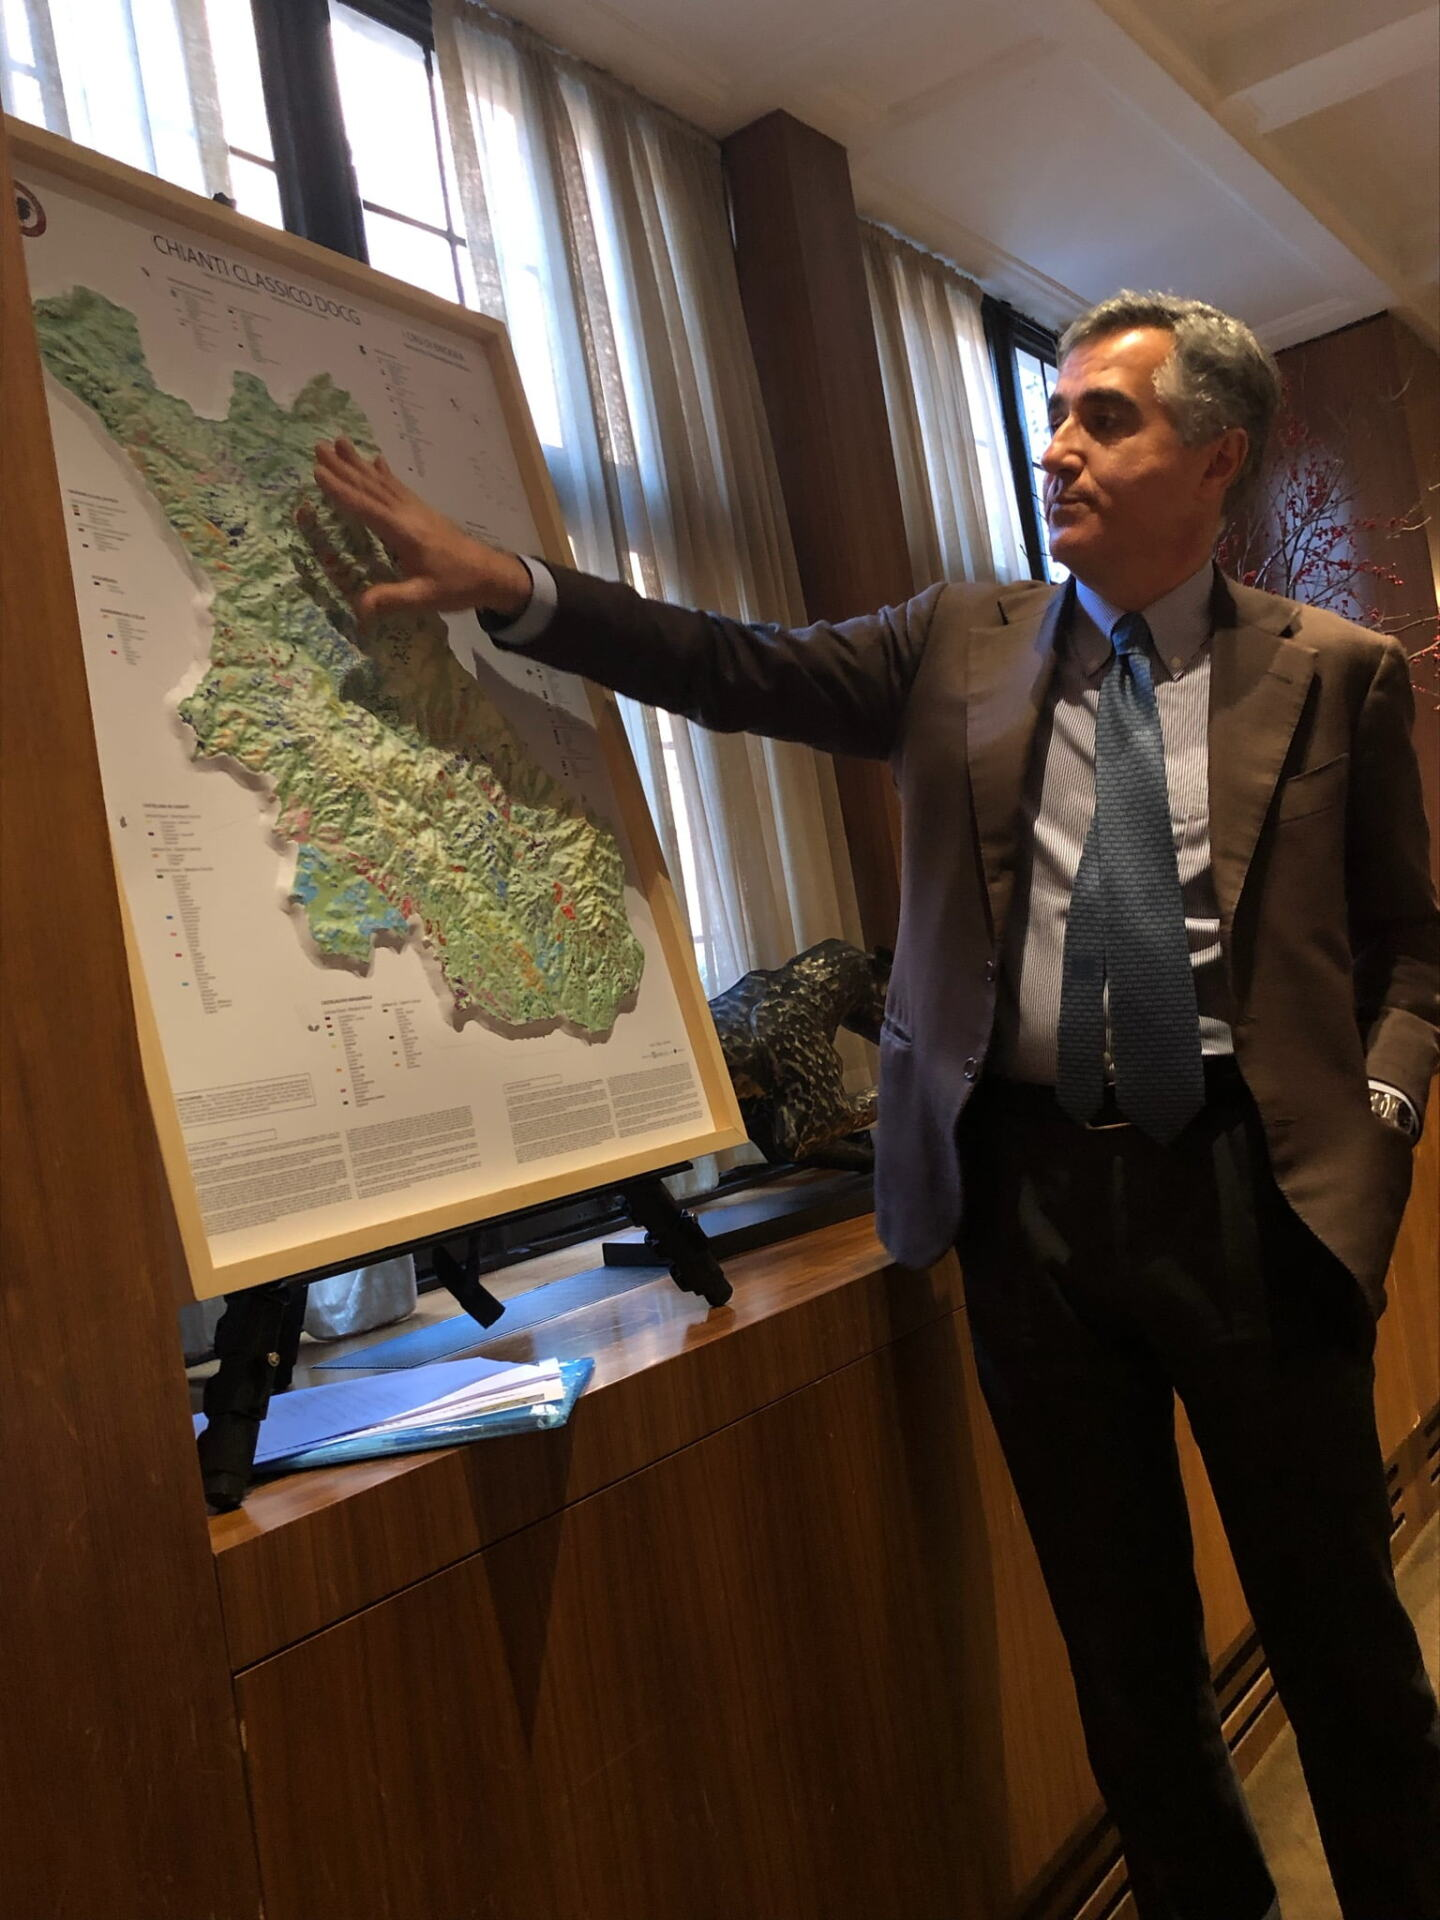 Giovanni Manetti point to a map of Chianti Classico